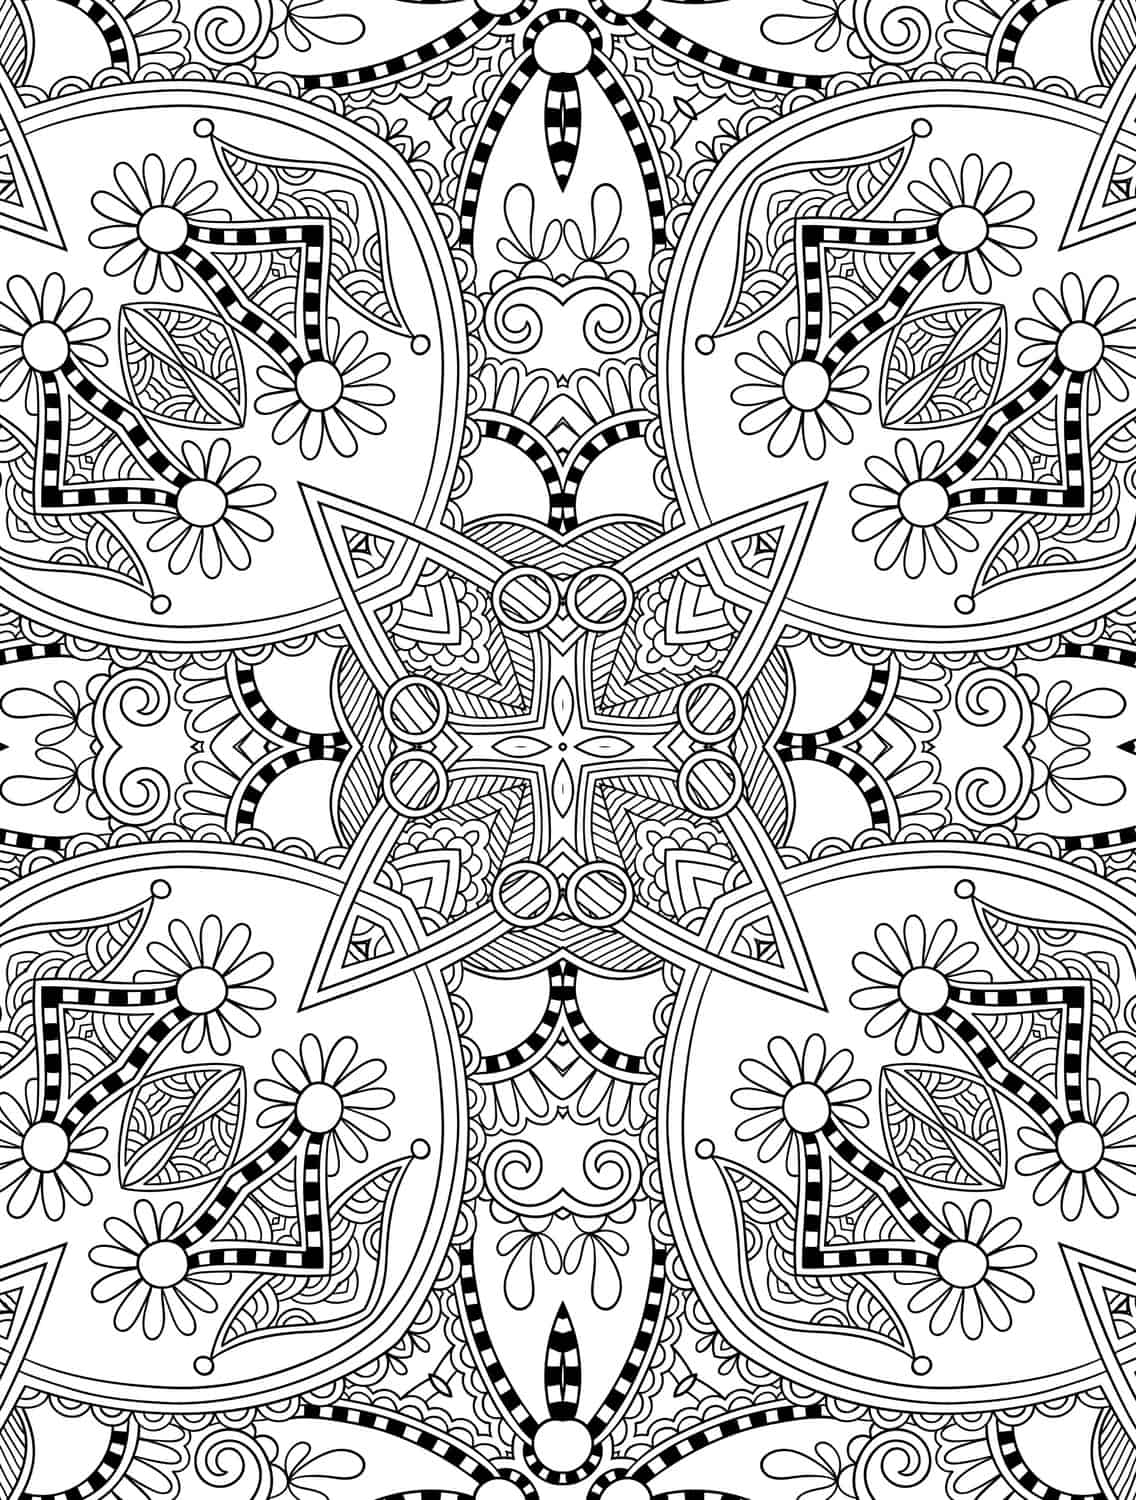 Christmas Colouring Pages For Adults Pdf : Free printable holiday adult coloring pages